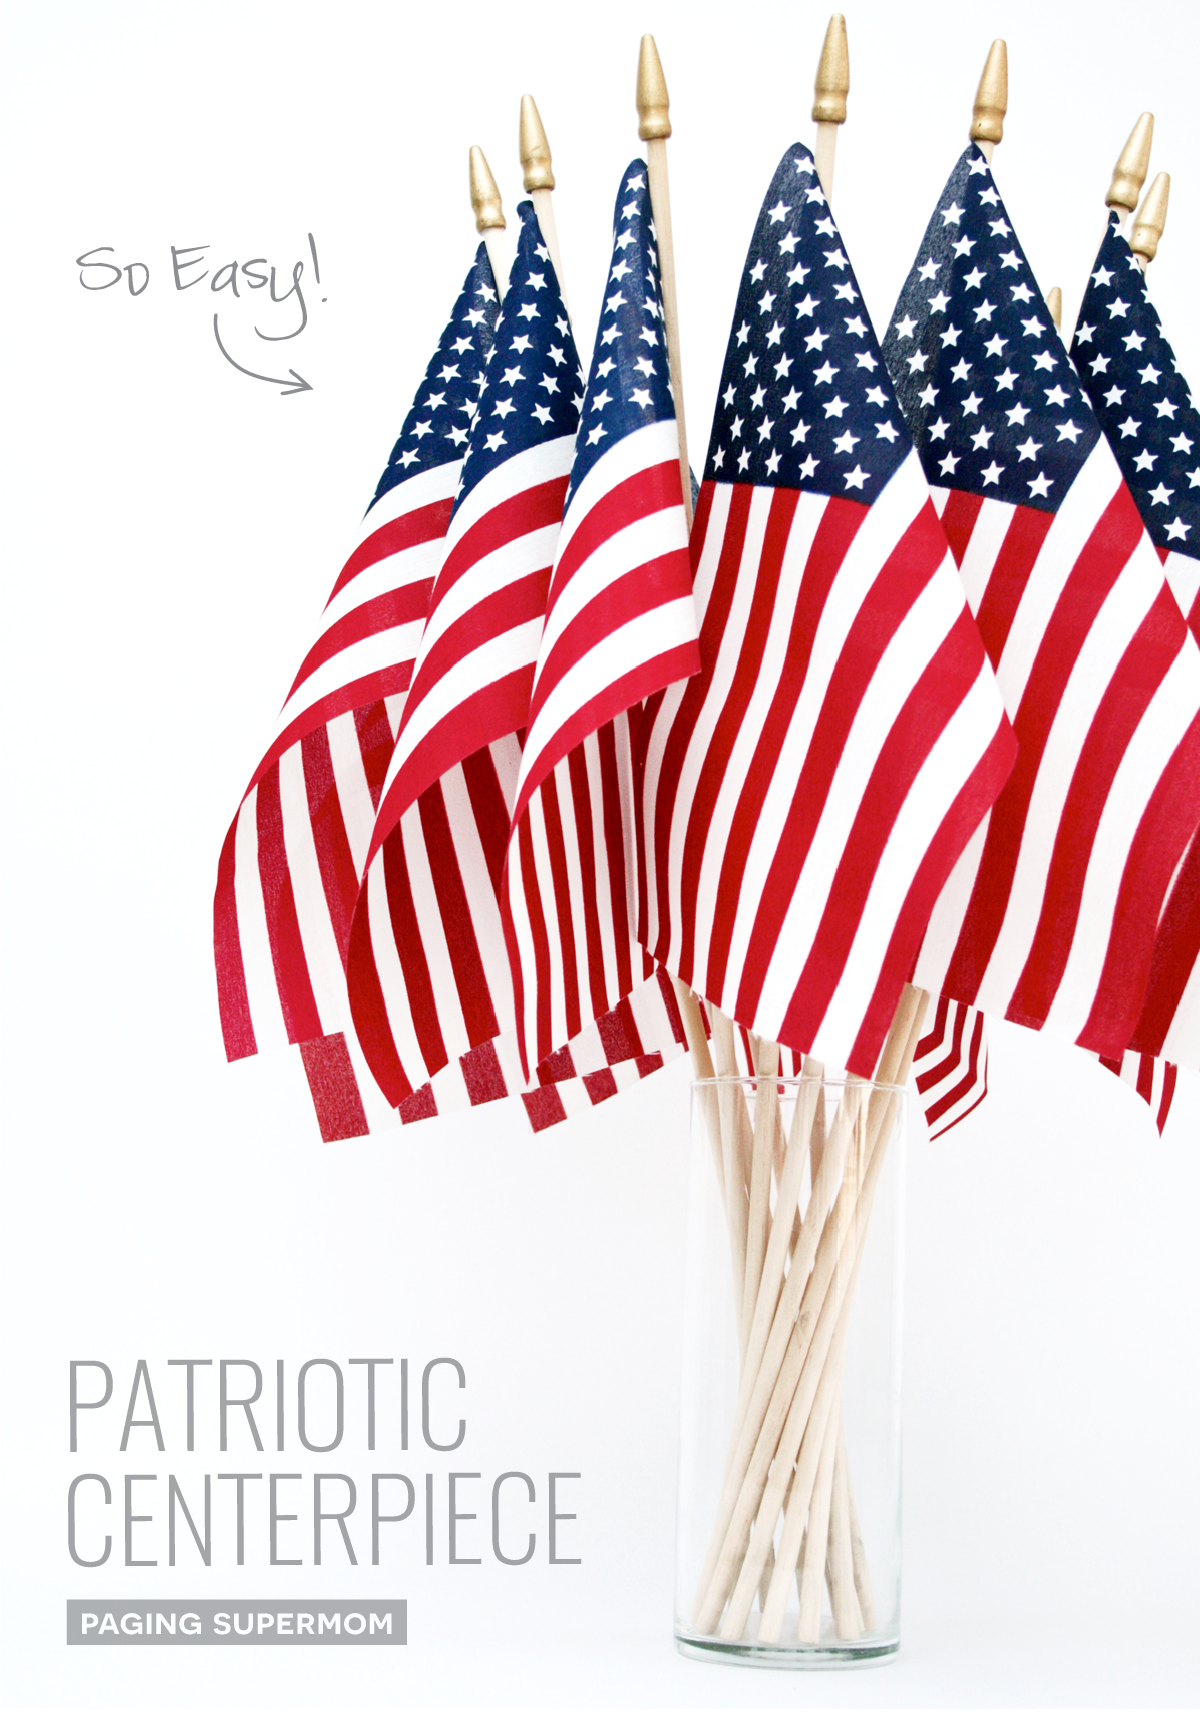 Easy Patriotic Centerpiece with just flags and a vase via @PagingSupermom